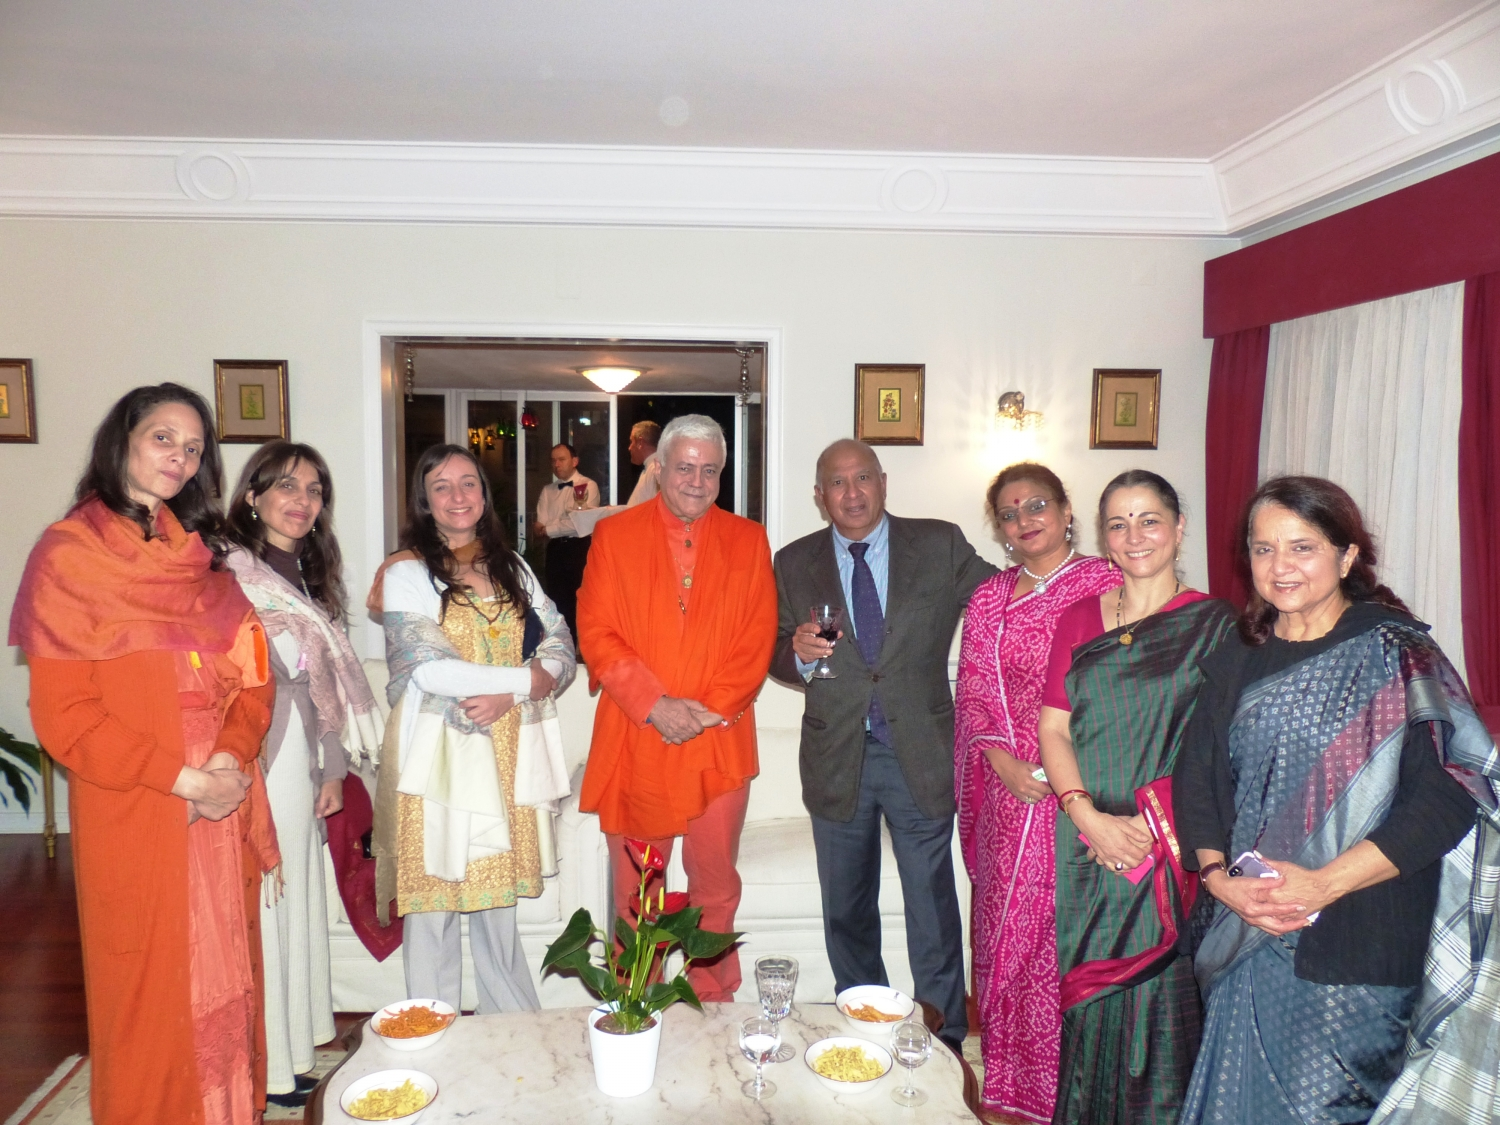 with Kantilal Jamnadas, President of the Hindu Community of Portugal